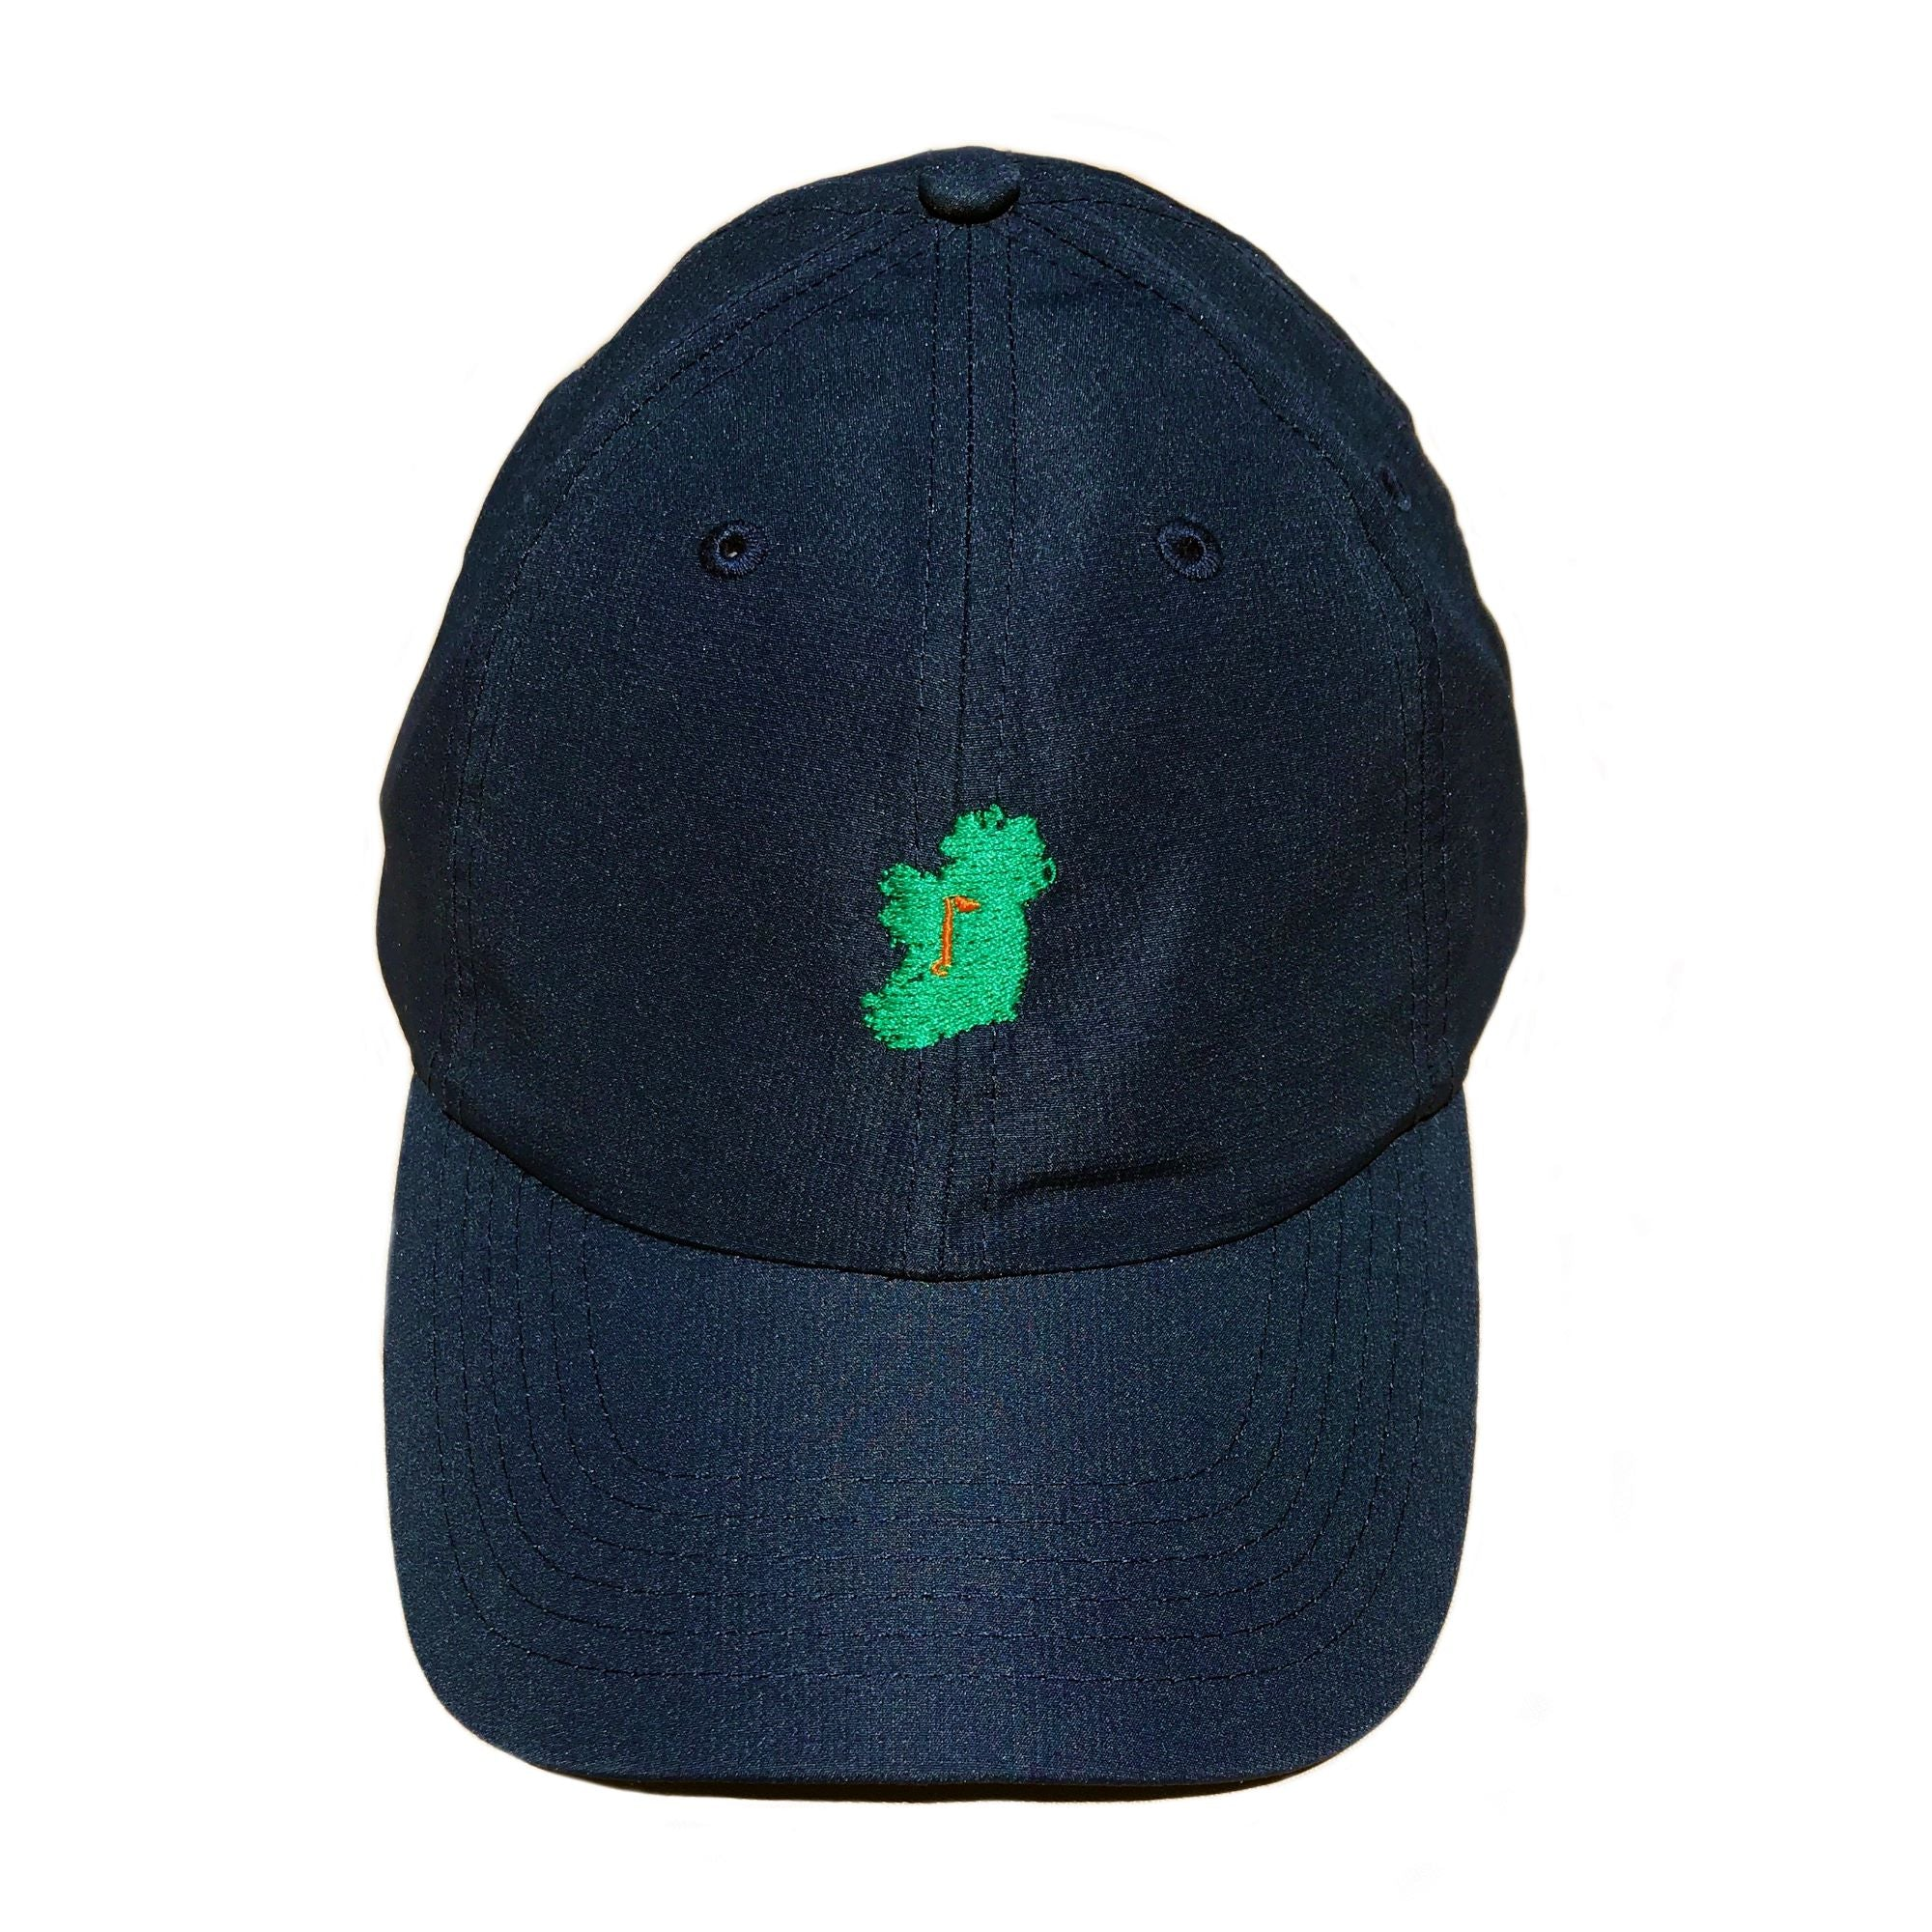 The Ireland Hat - Lightweight Performance